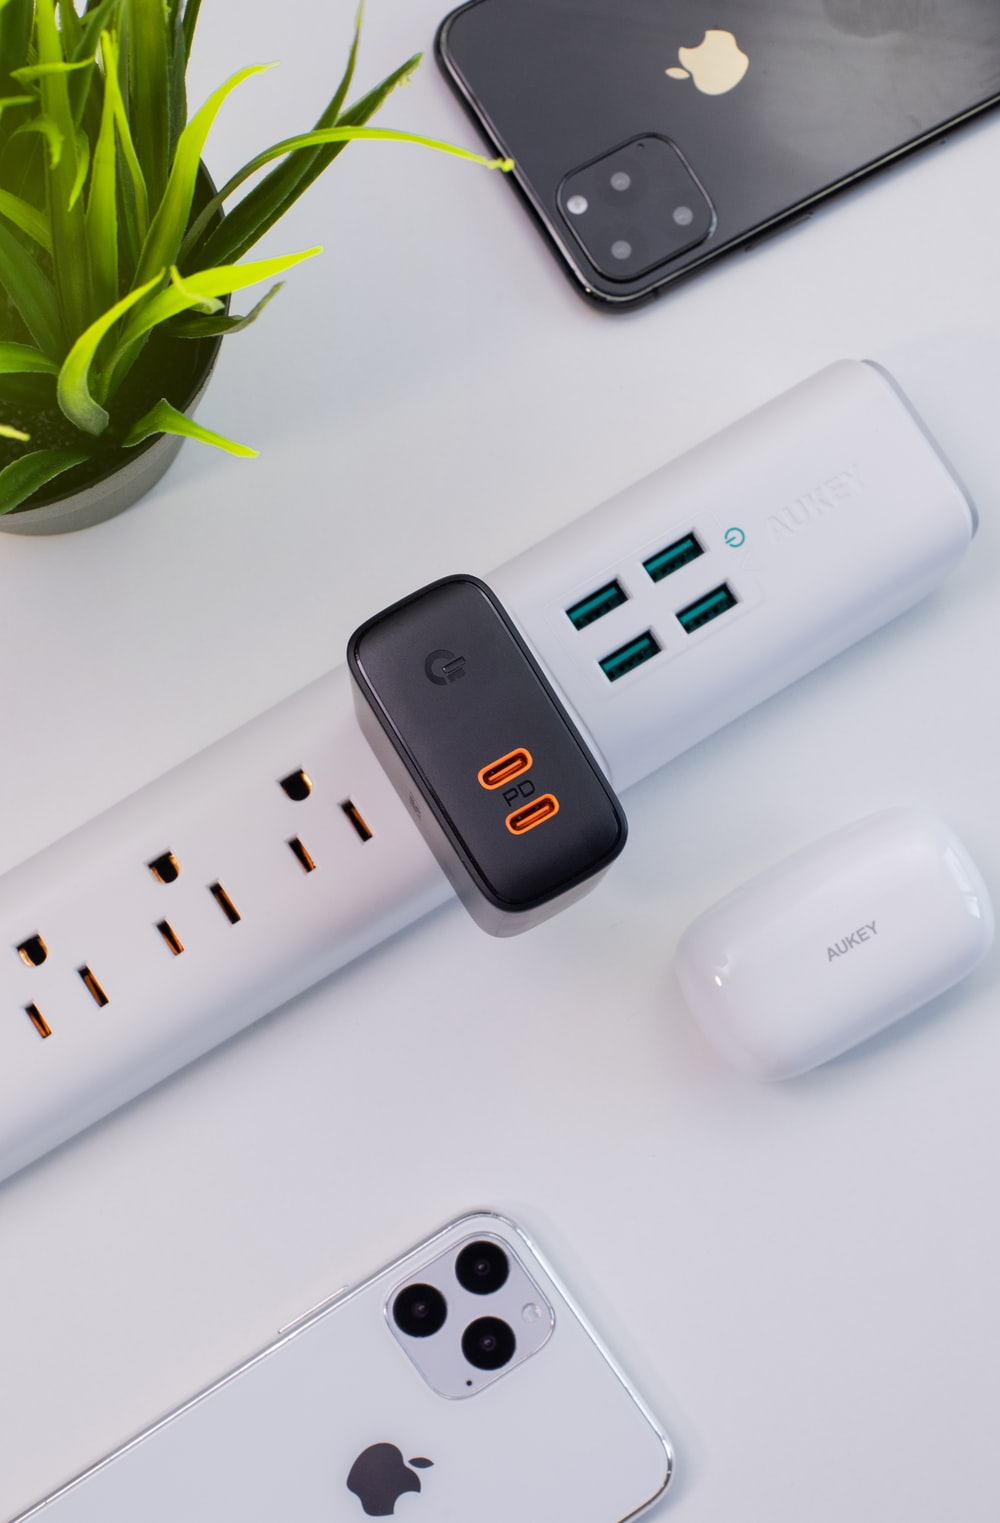 black power adapter plugged in power strip